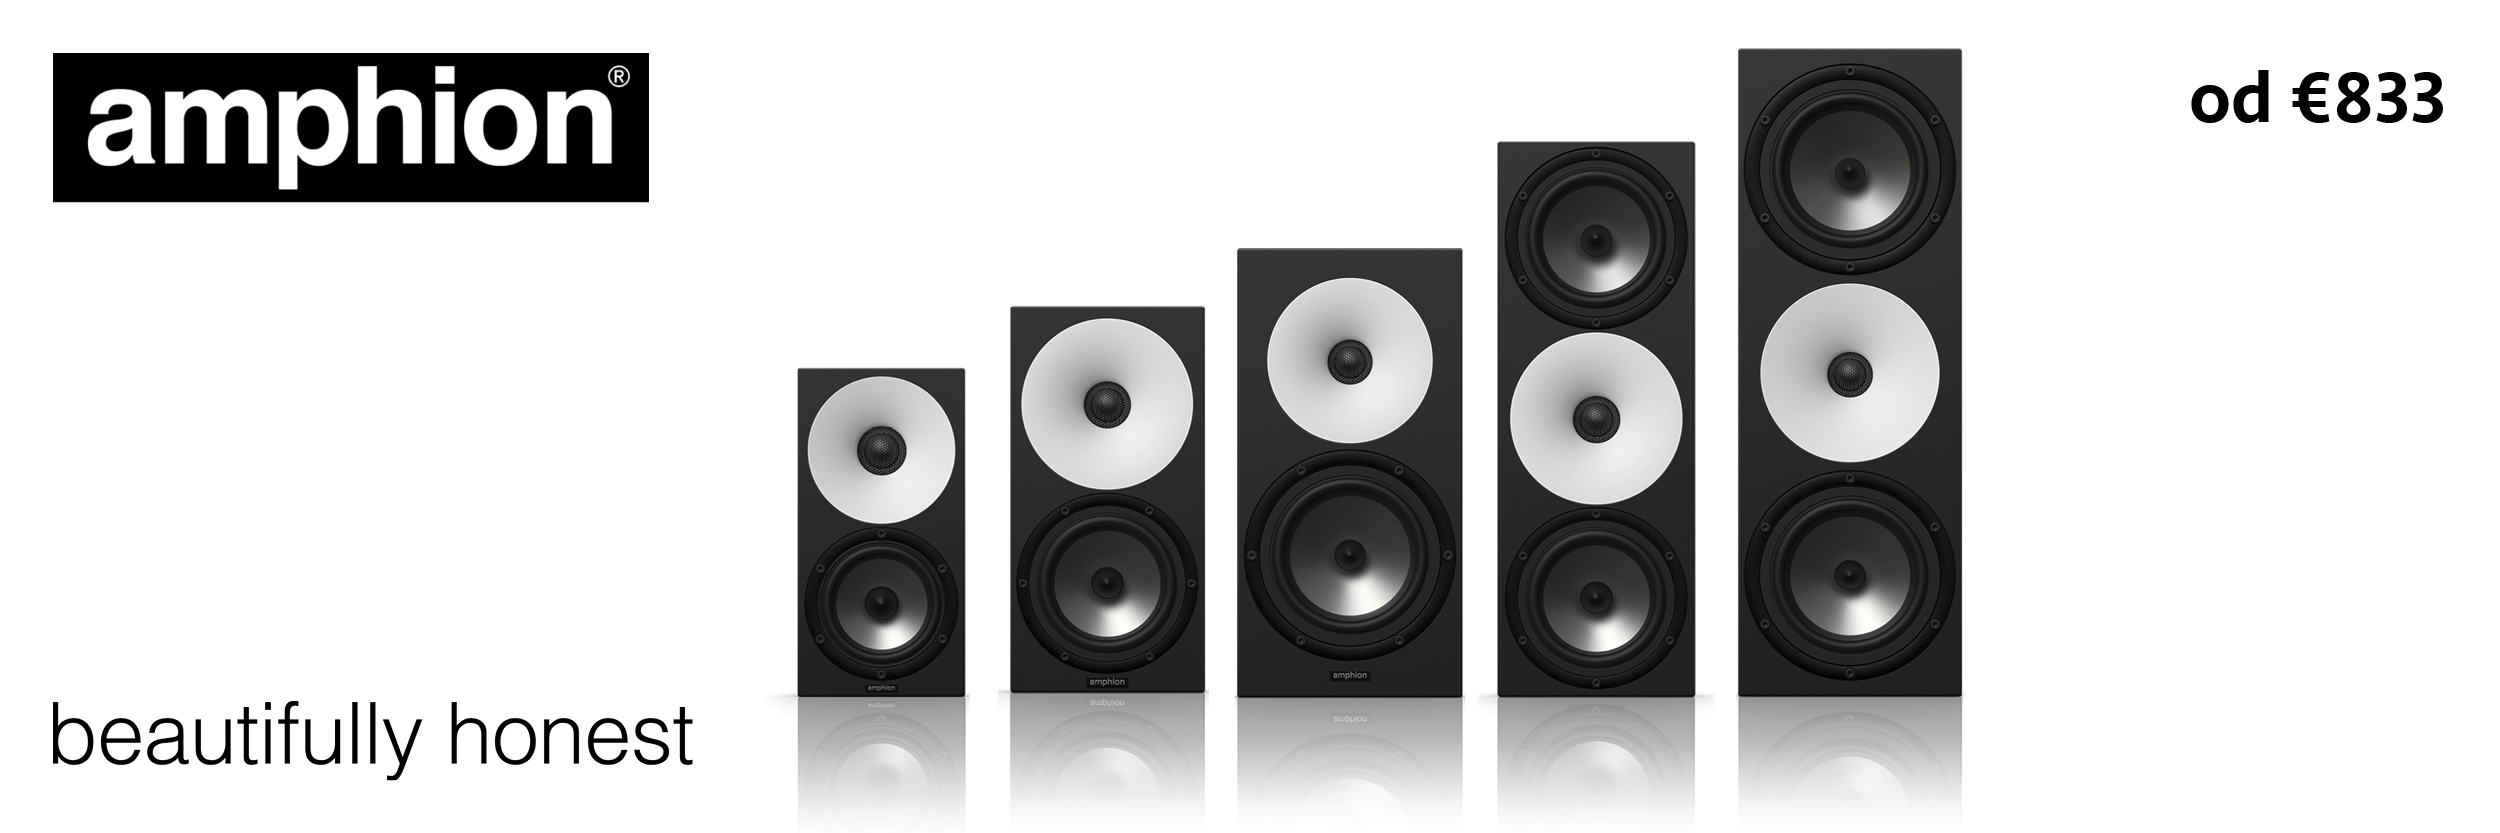 Amphion Monitors